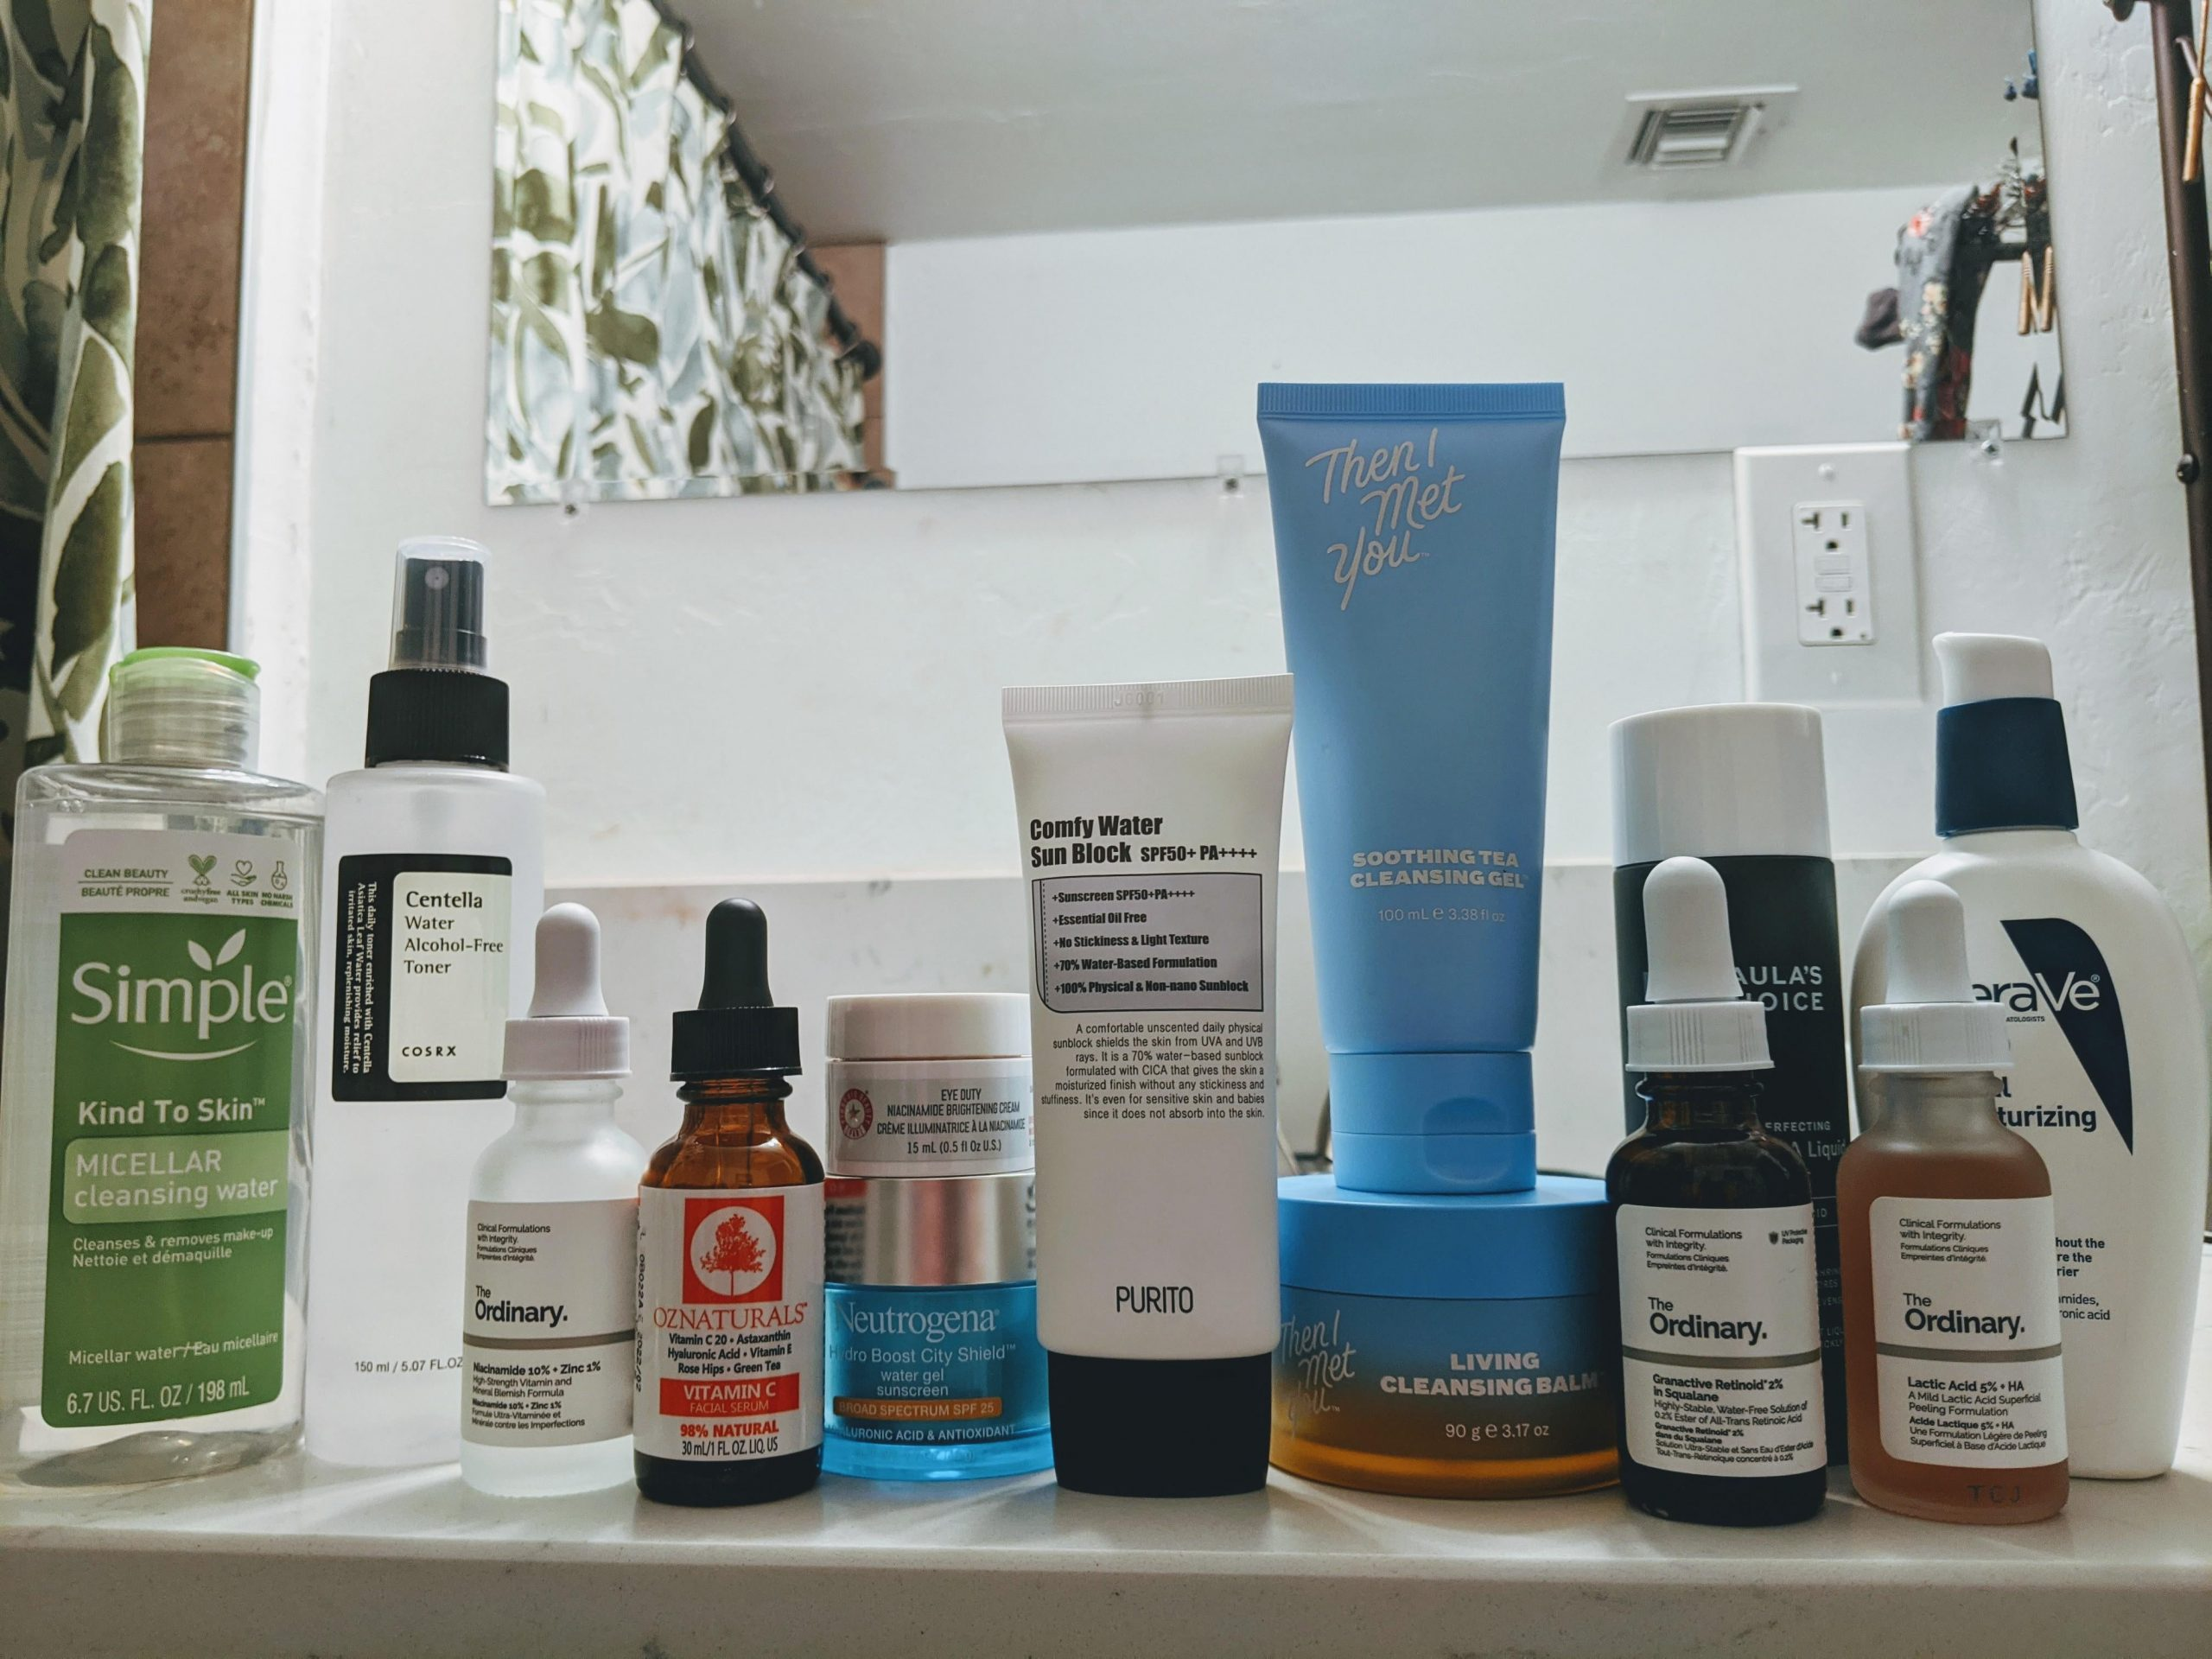 [Shelfie] of an oily skin person living in an extremely dry climate